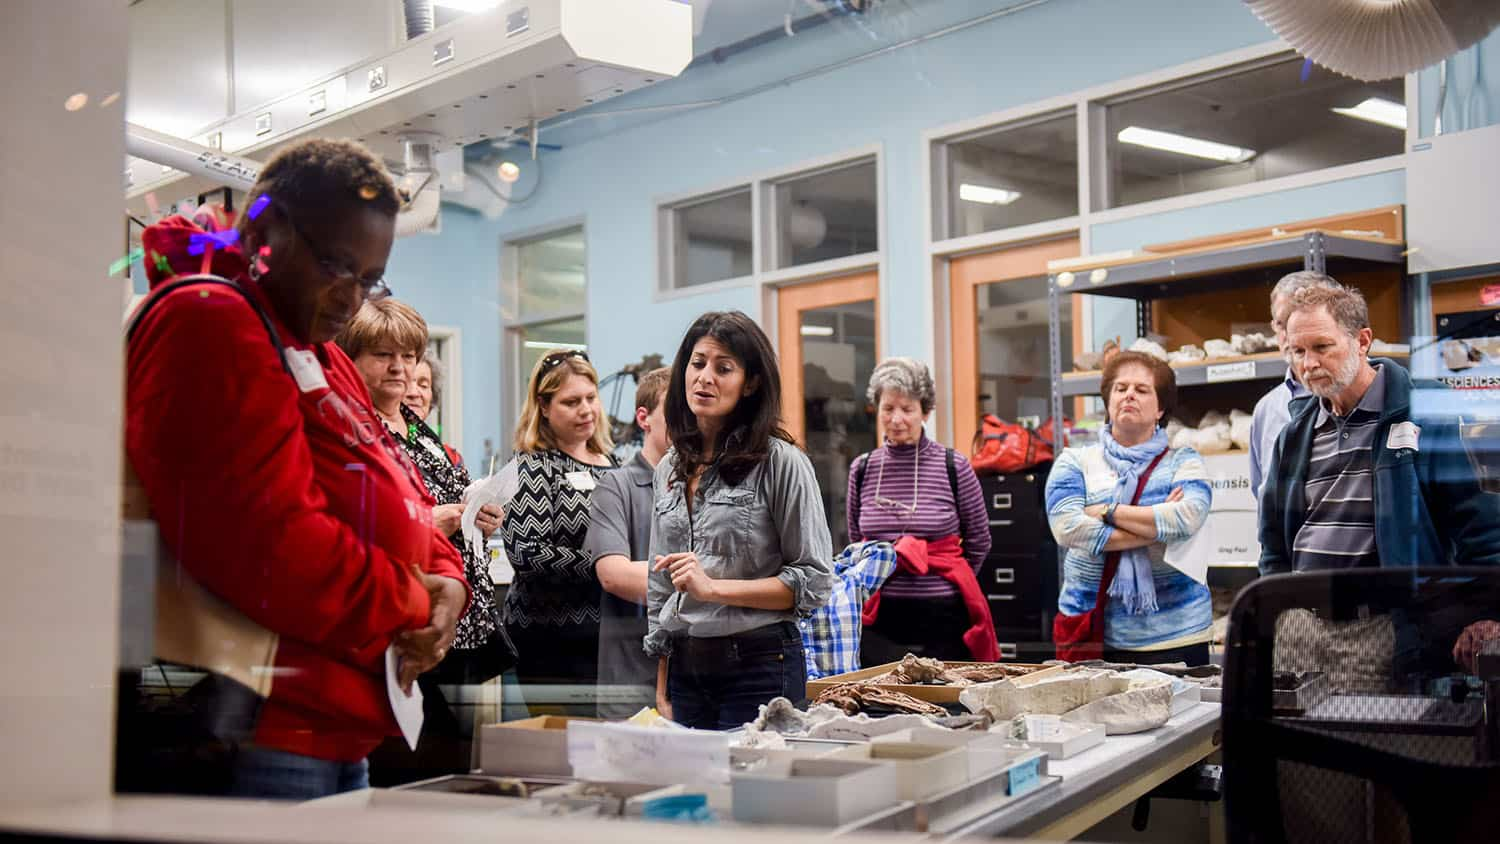 Lindsay Zanno leads a tour of her paleontology lab at the North Carolina Museum of Natural Sciences